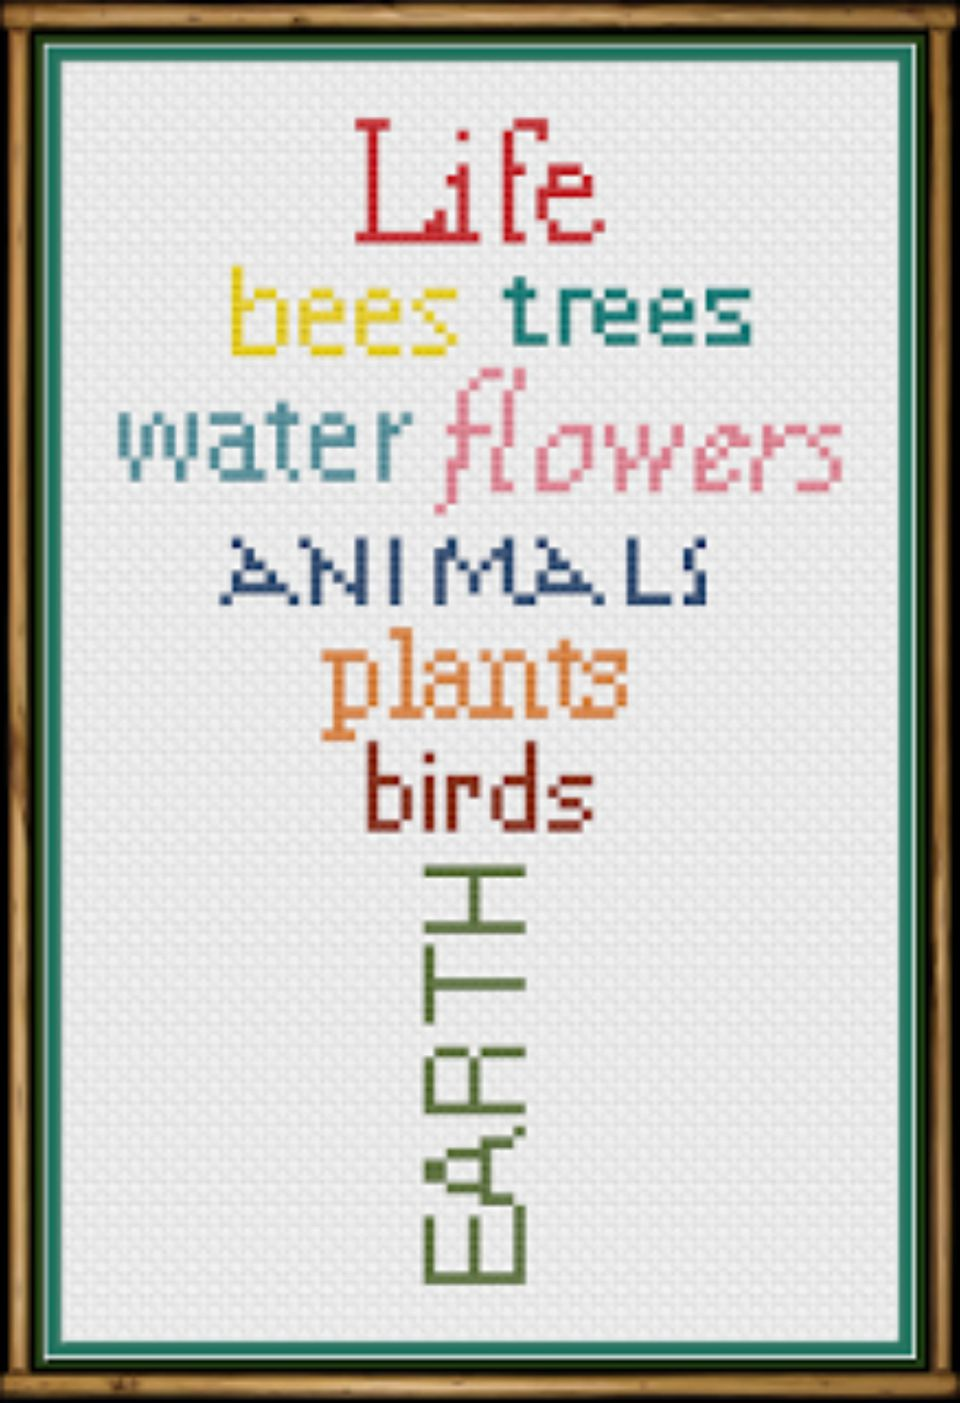 Cross Stitch Patterns To Celebrate Earth Day